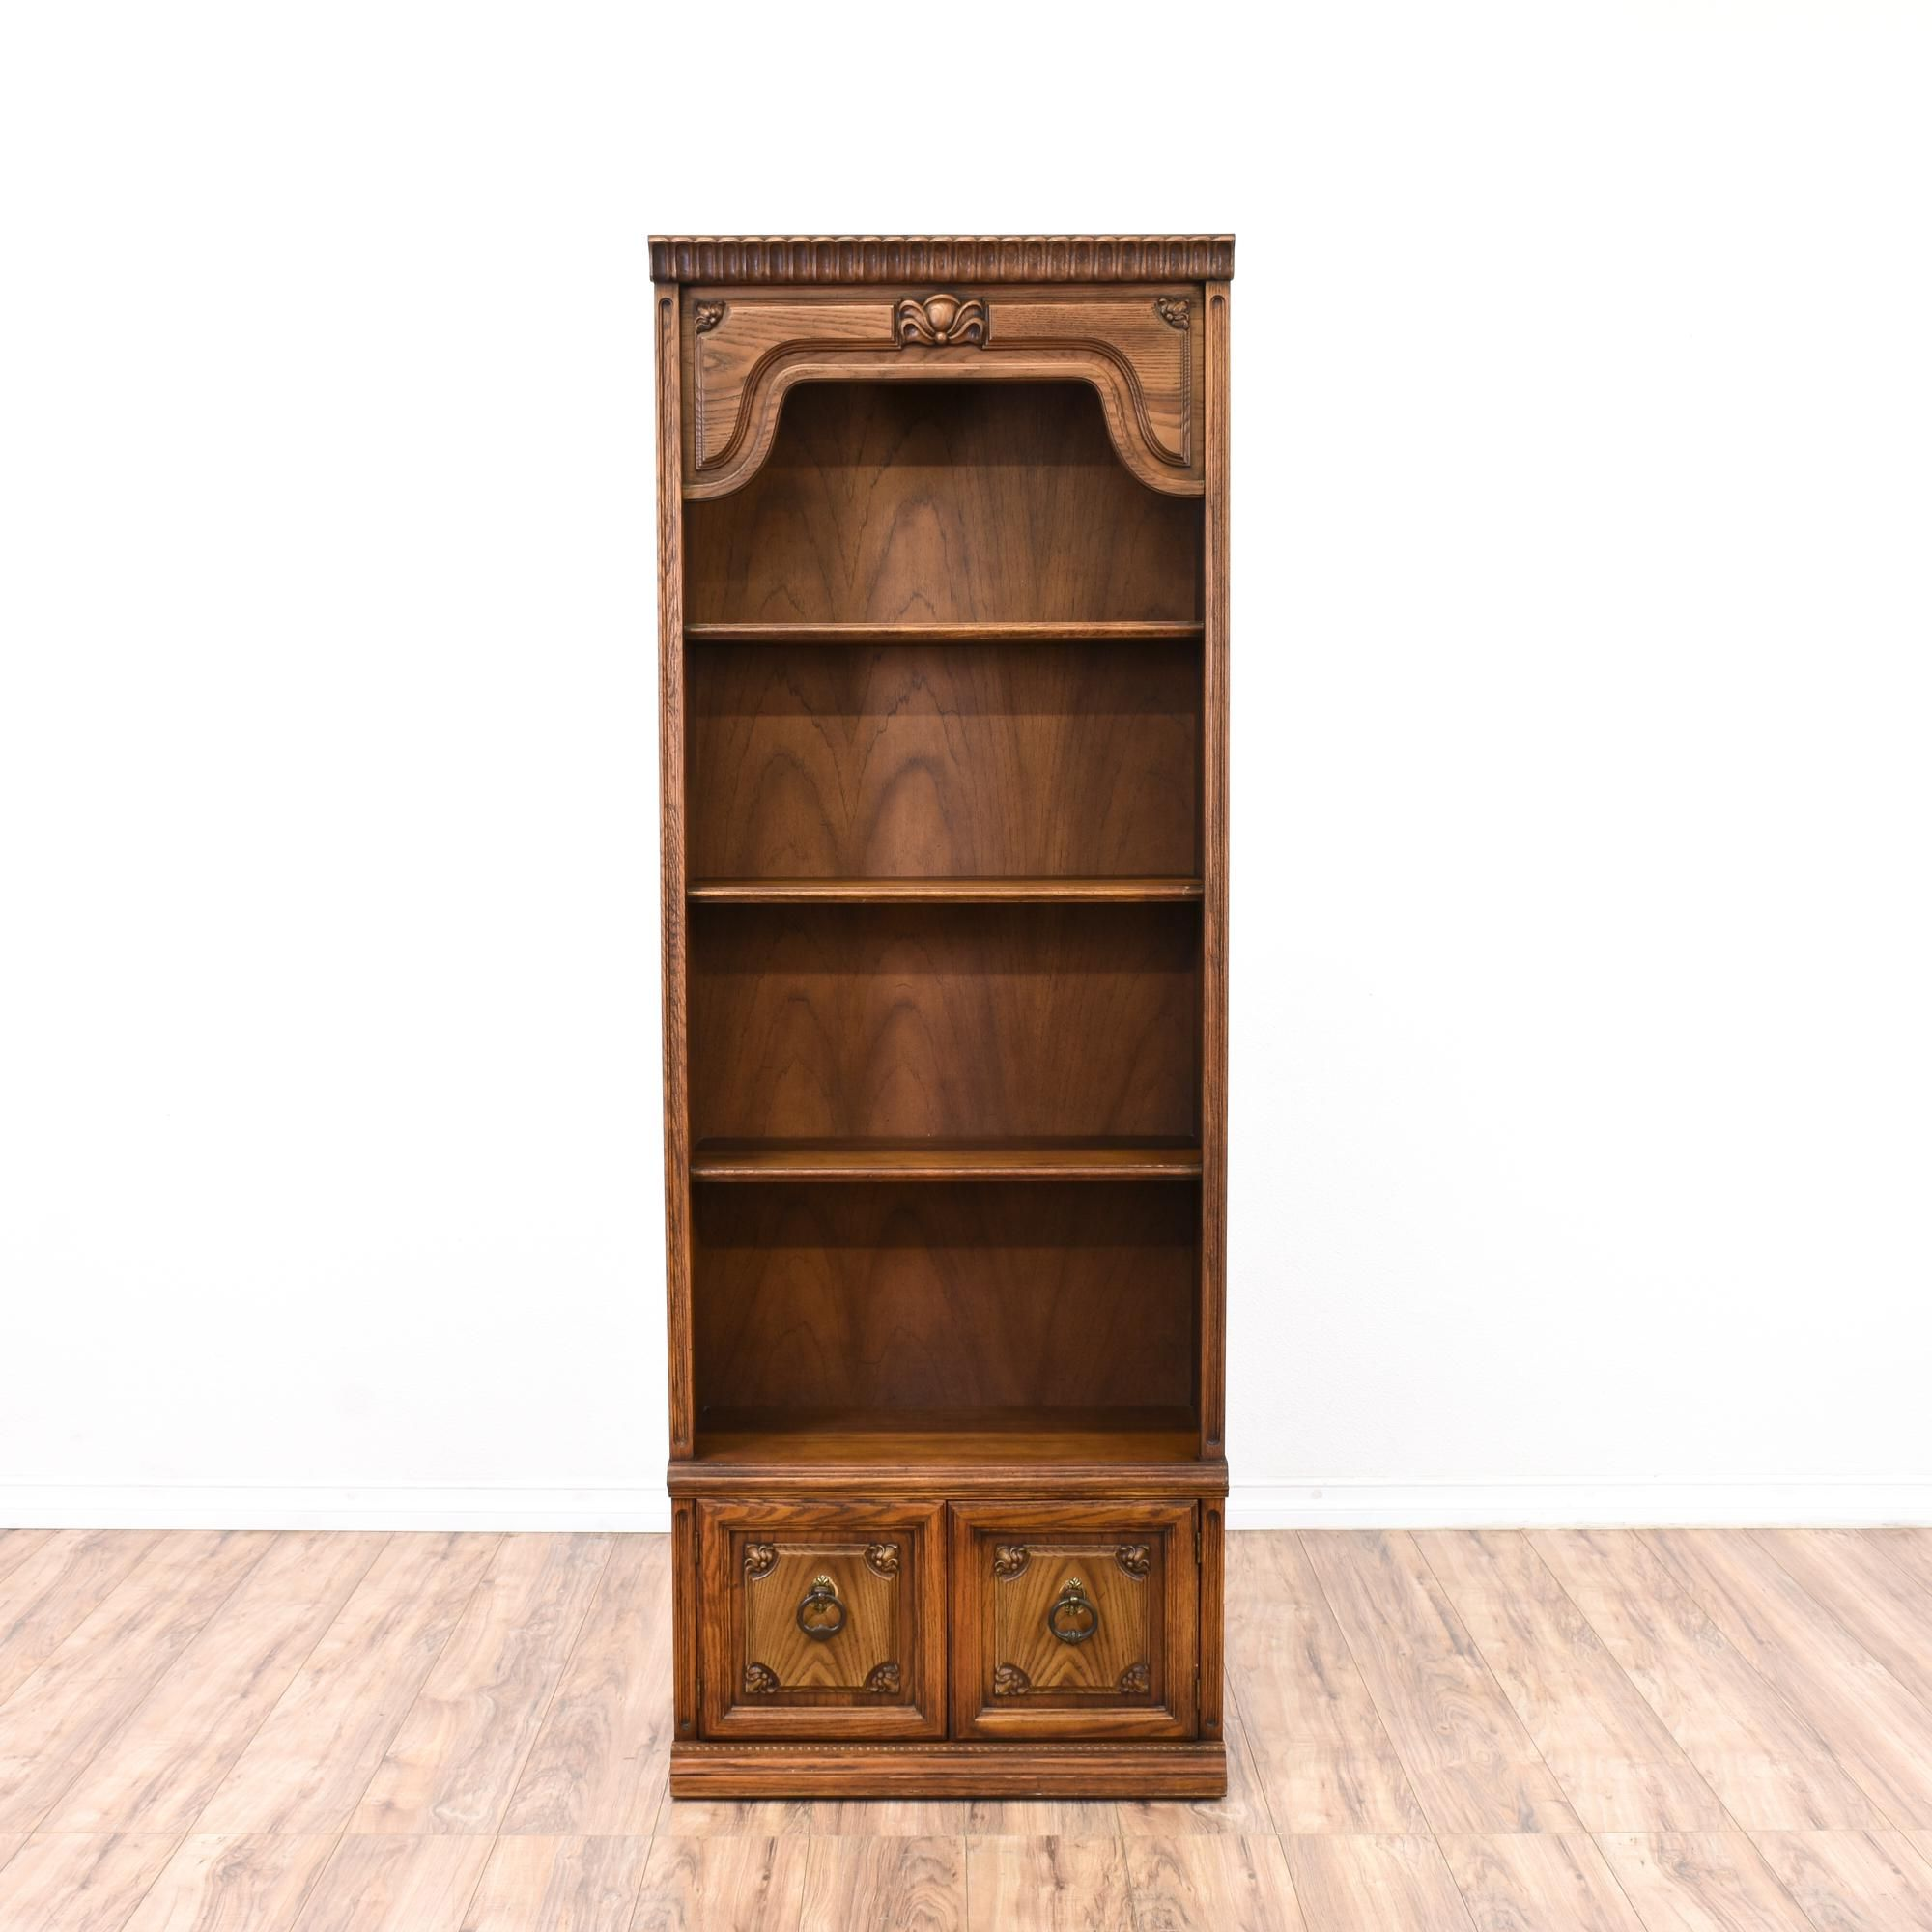 is featured finish glossy a solid bookcases in wood oak bookcase dark pin with this